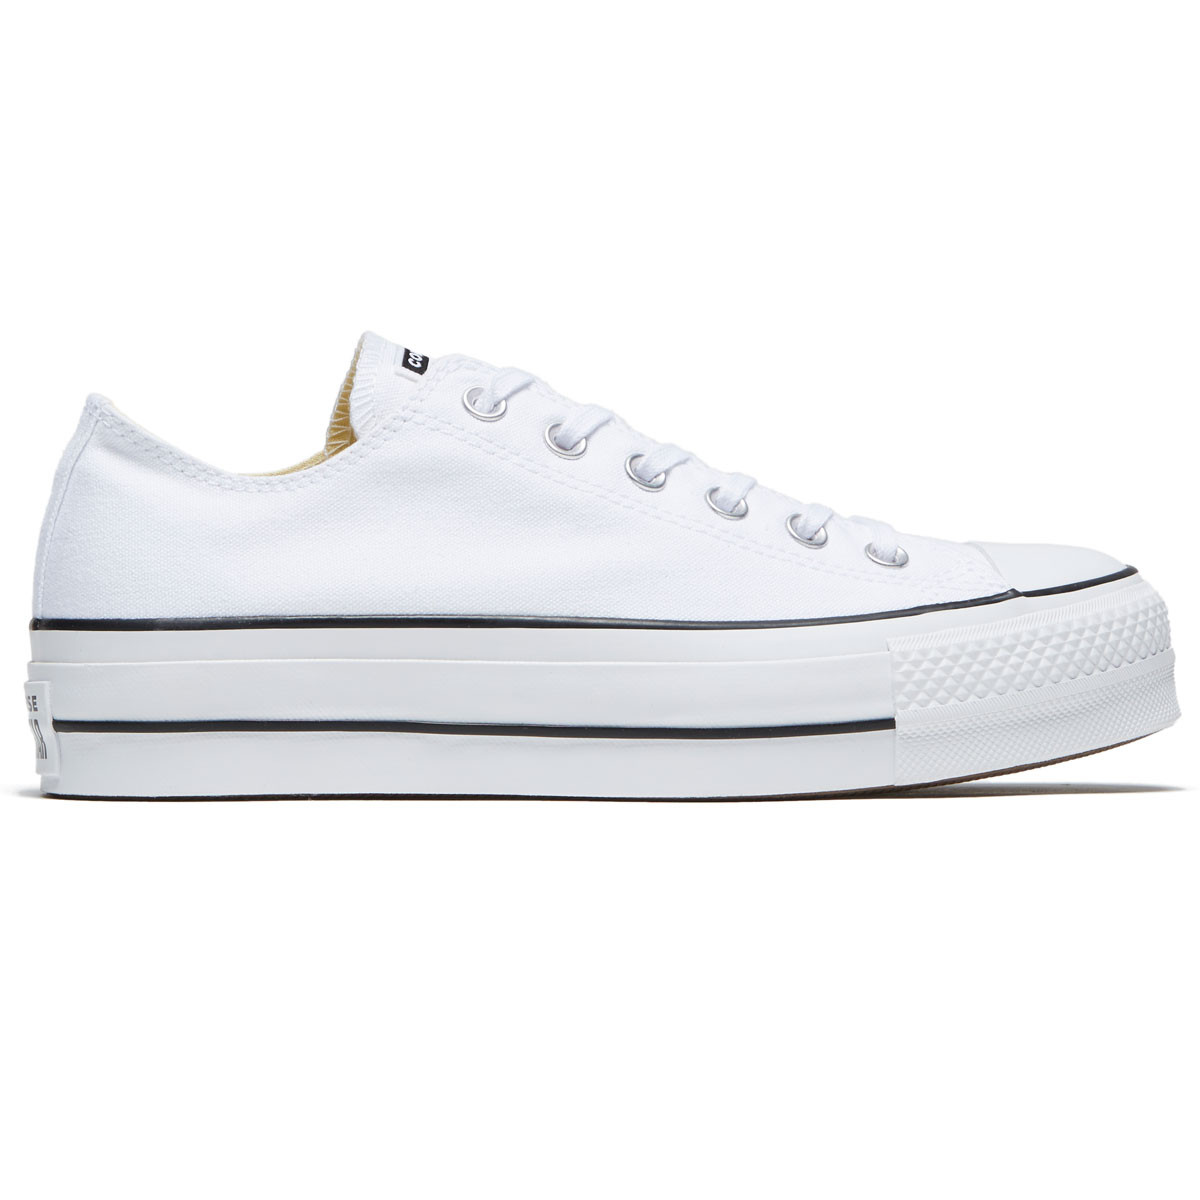 free shipping 848ff 13977 Converse Womens Chuck Taylor All Star Lift Shoes - Black/White/White - 6.0